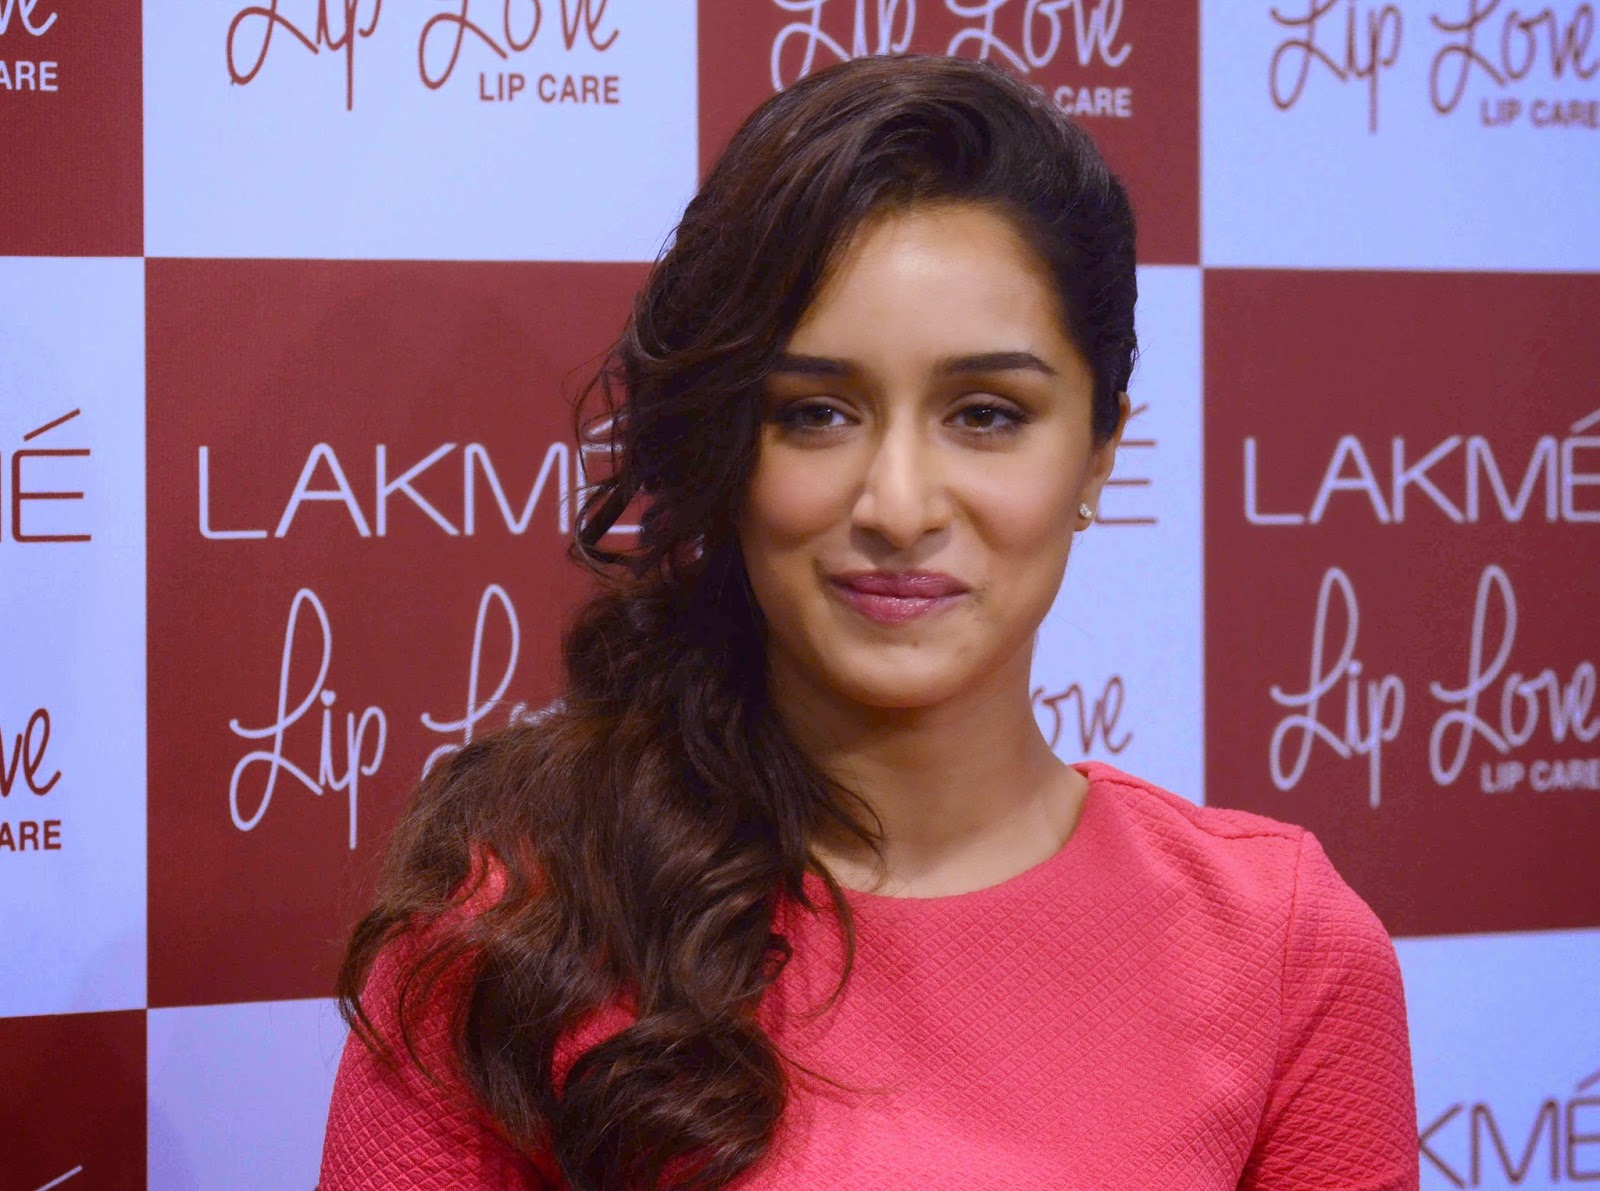 beautiful pictures of Shraddha Kapoor